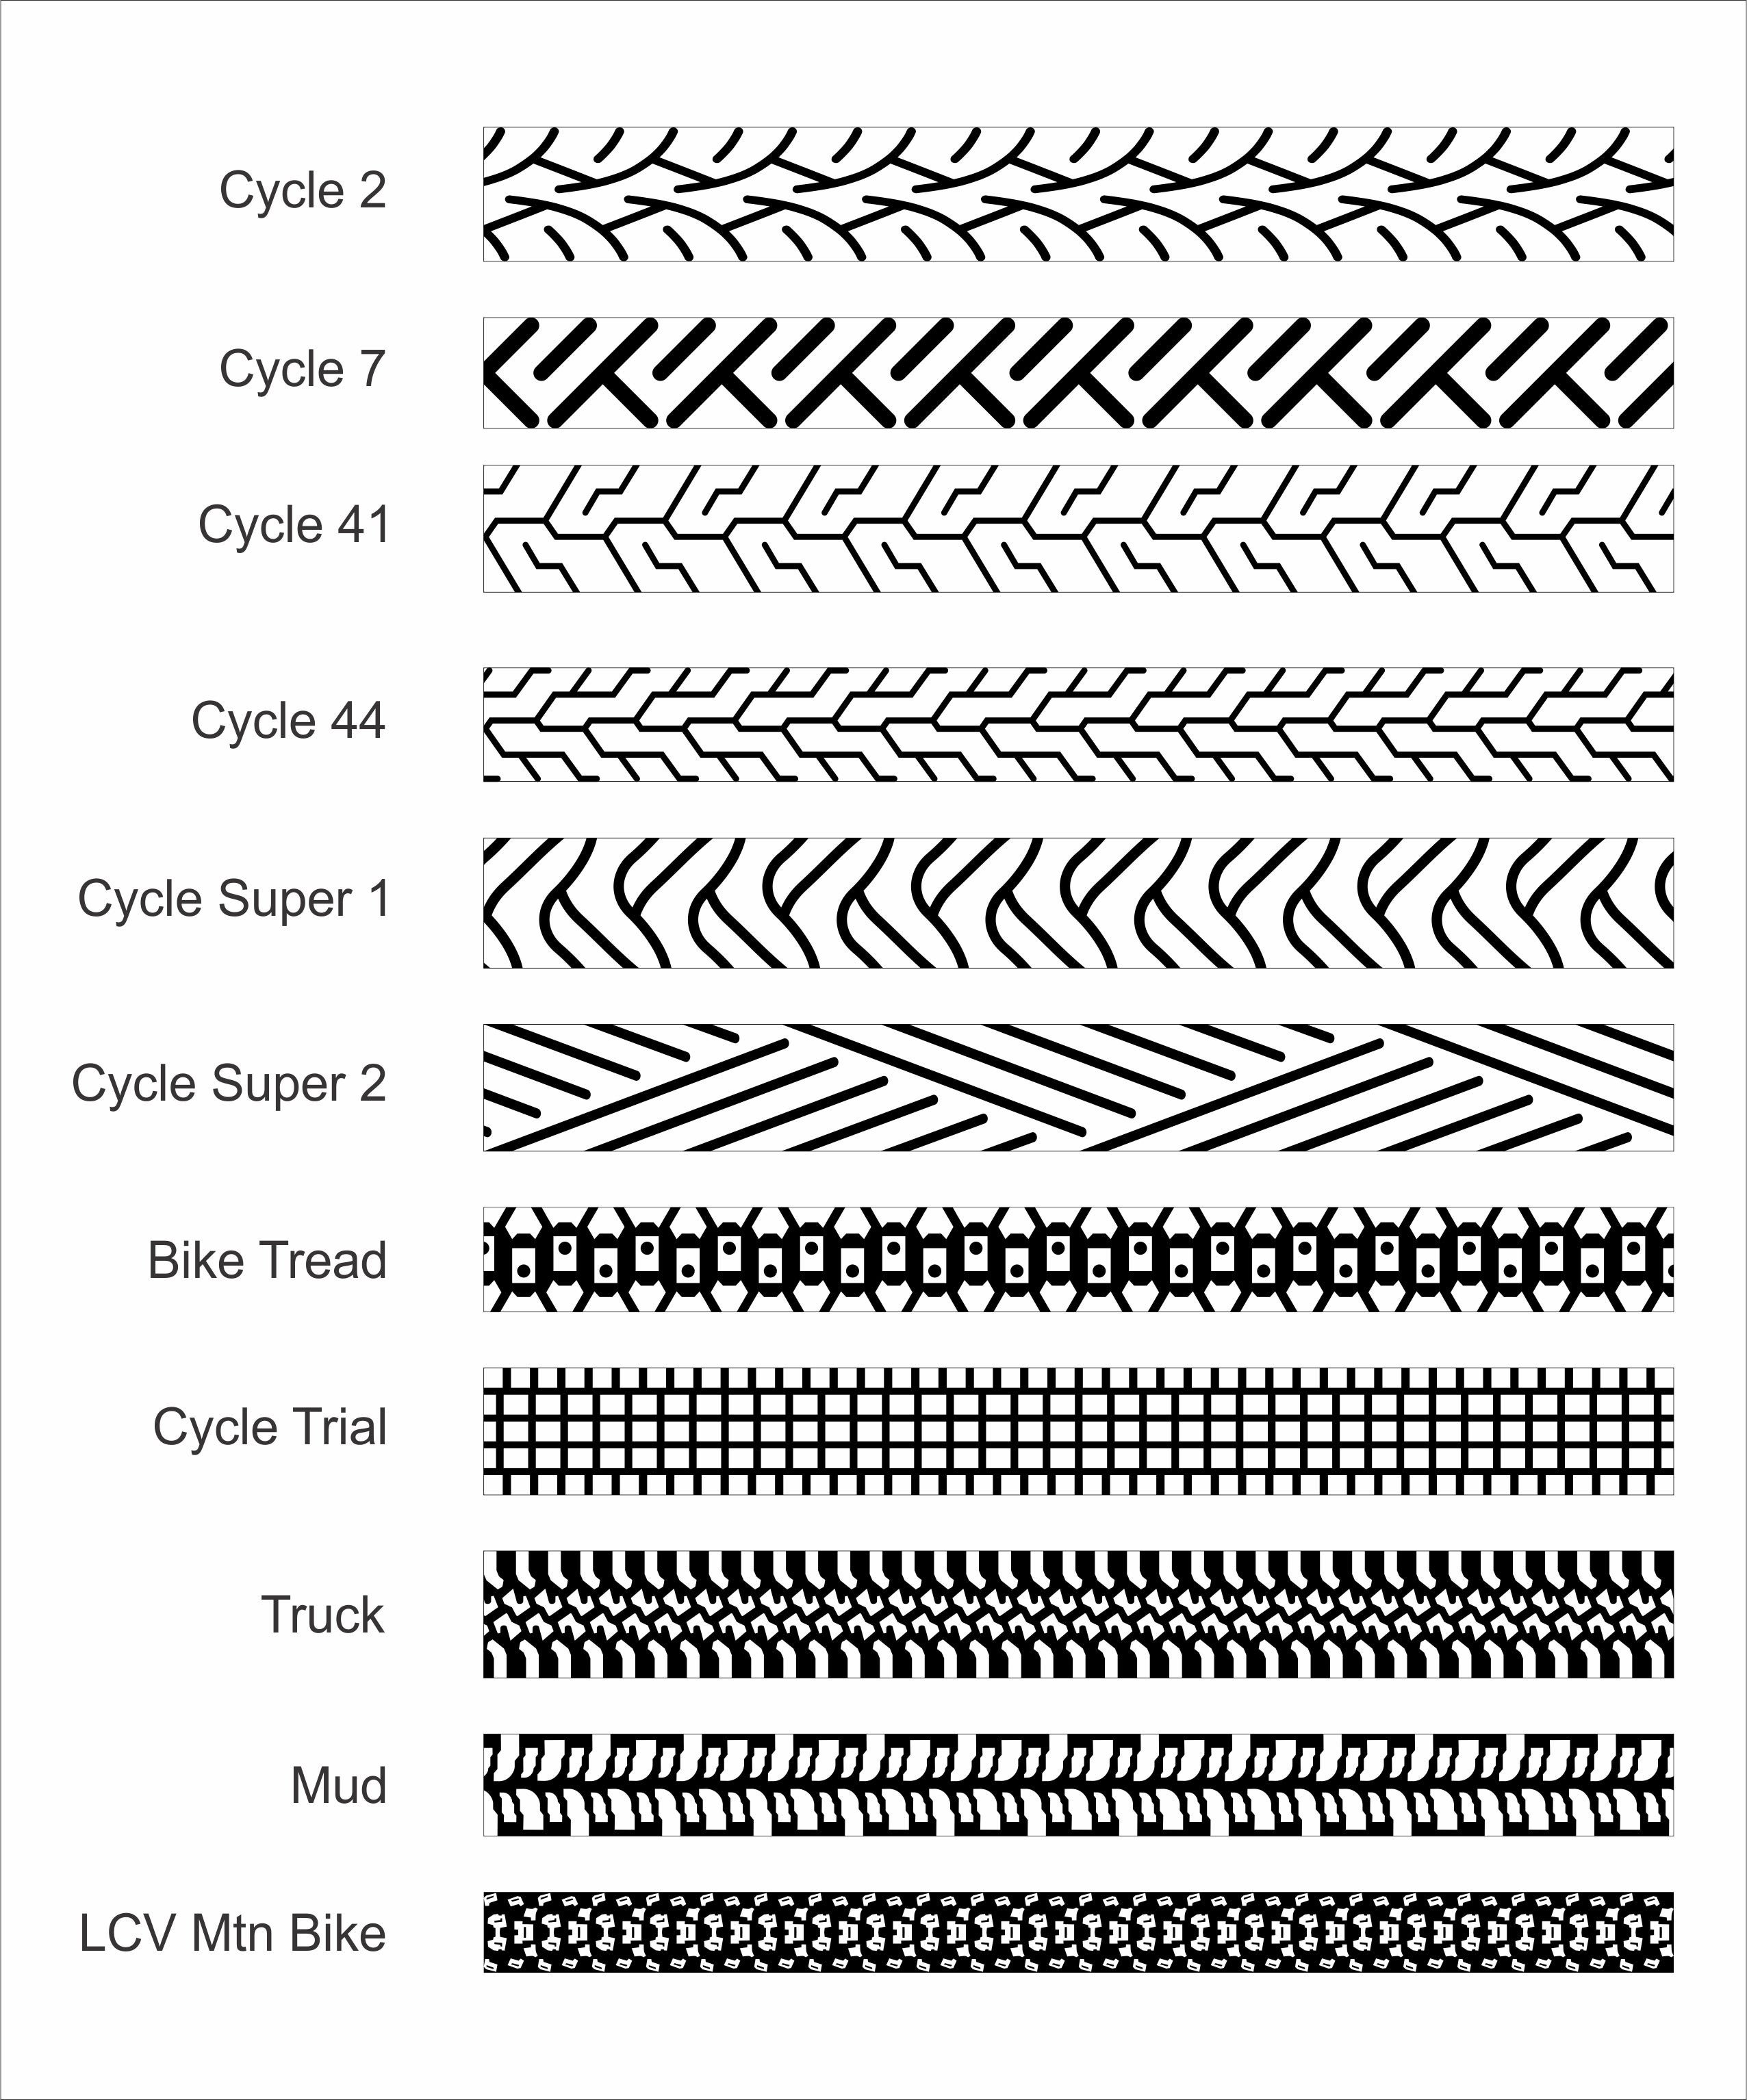 Tire Tread Patterns for Men's Wedding Bands